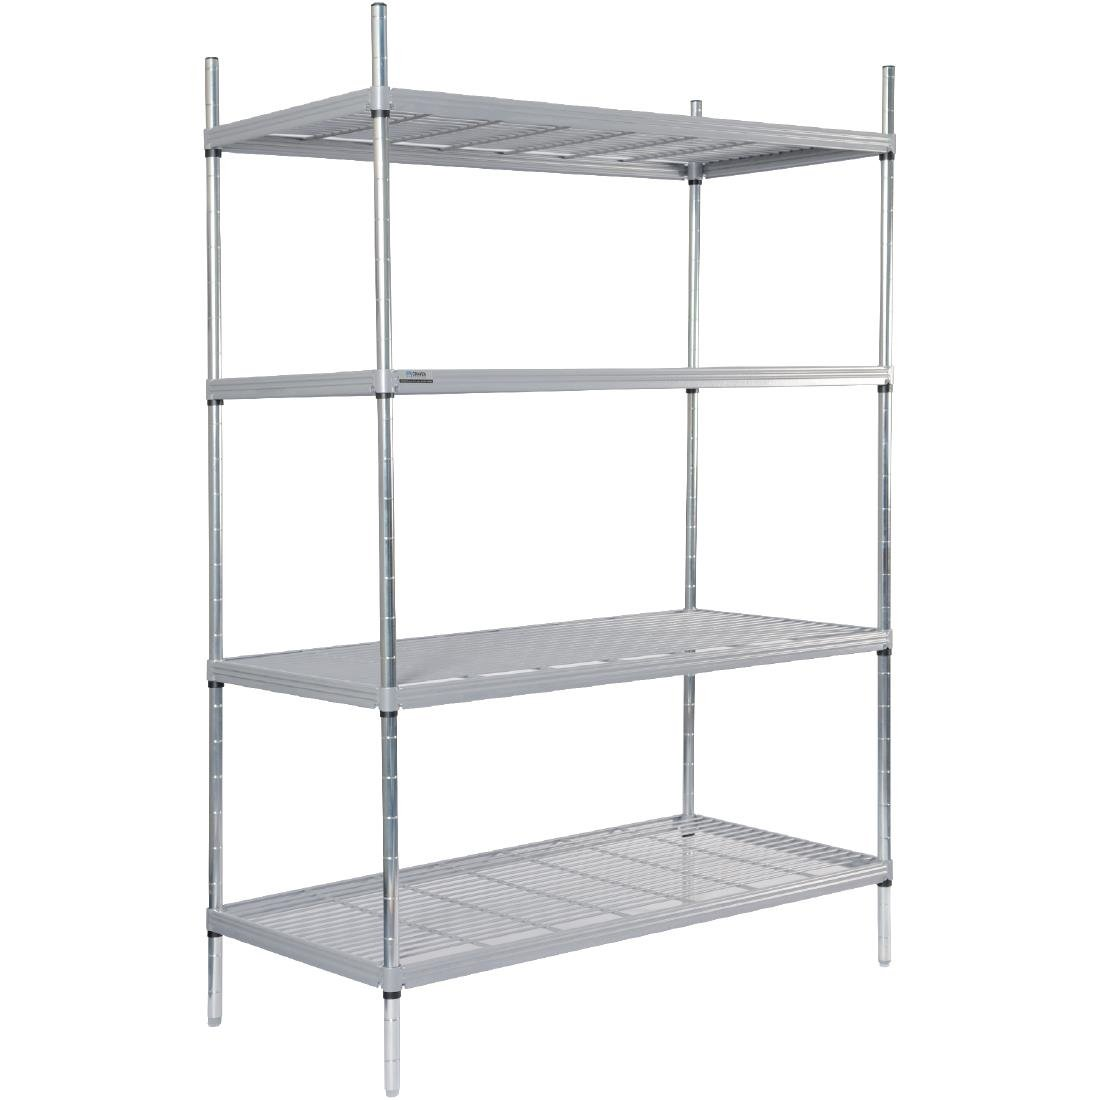 Image of Craven 4 Tier Nylon Coated Wire Shelving 1700x1175x491mm